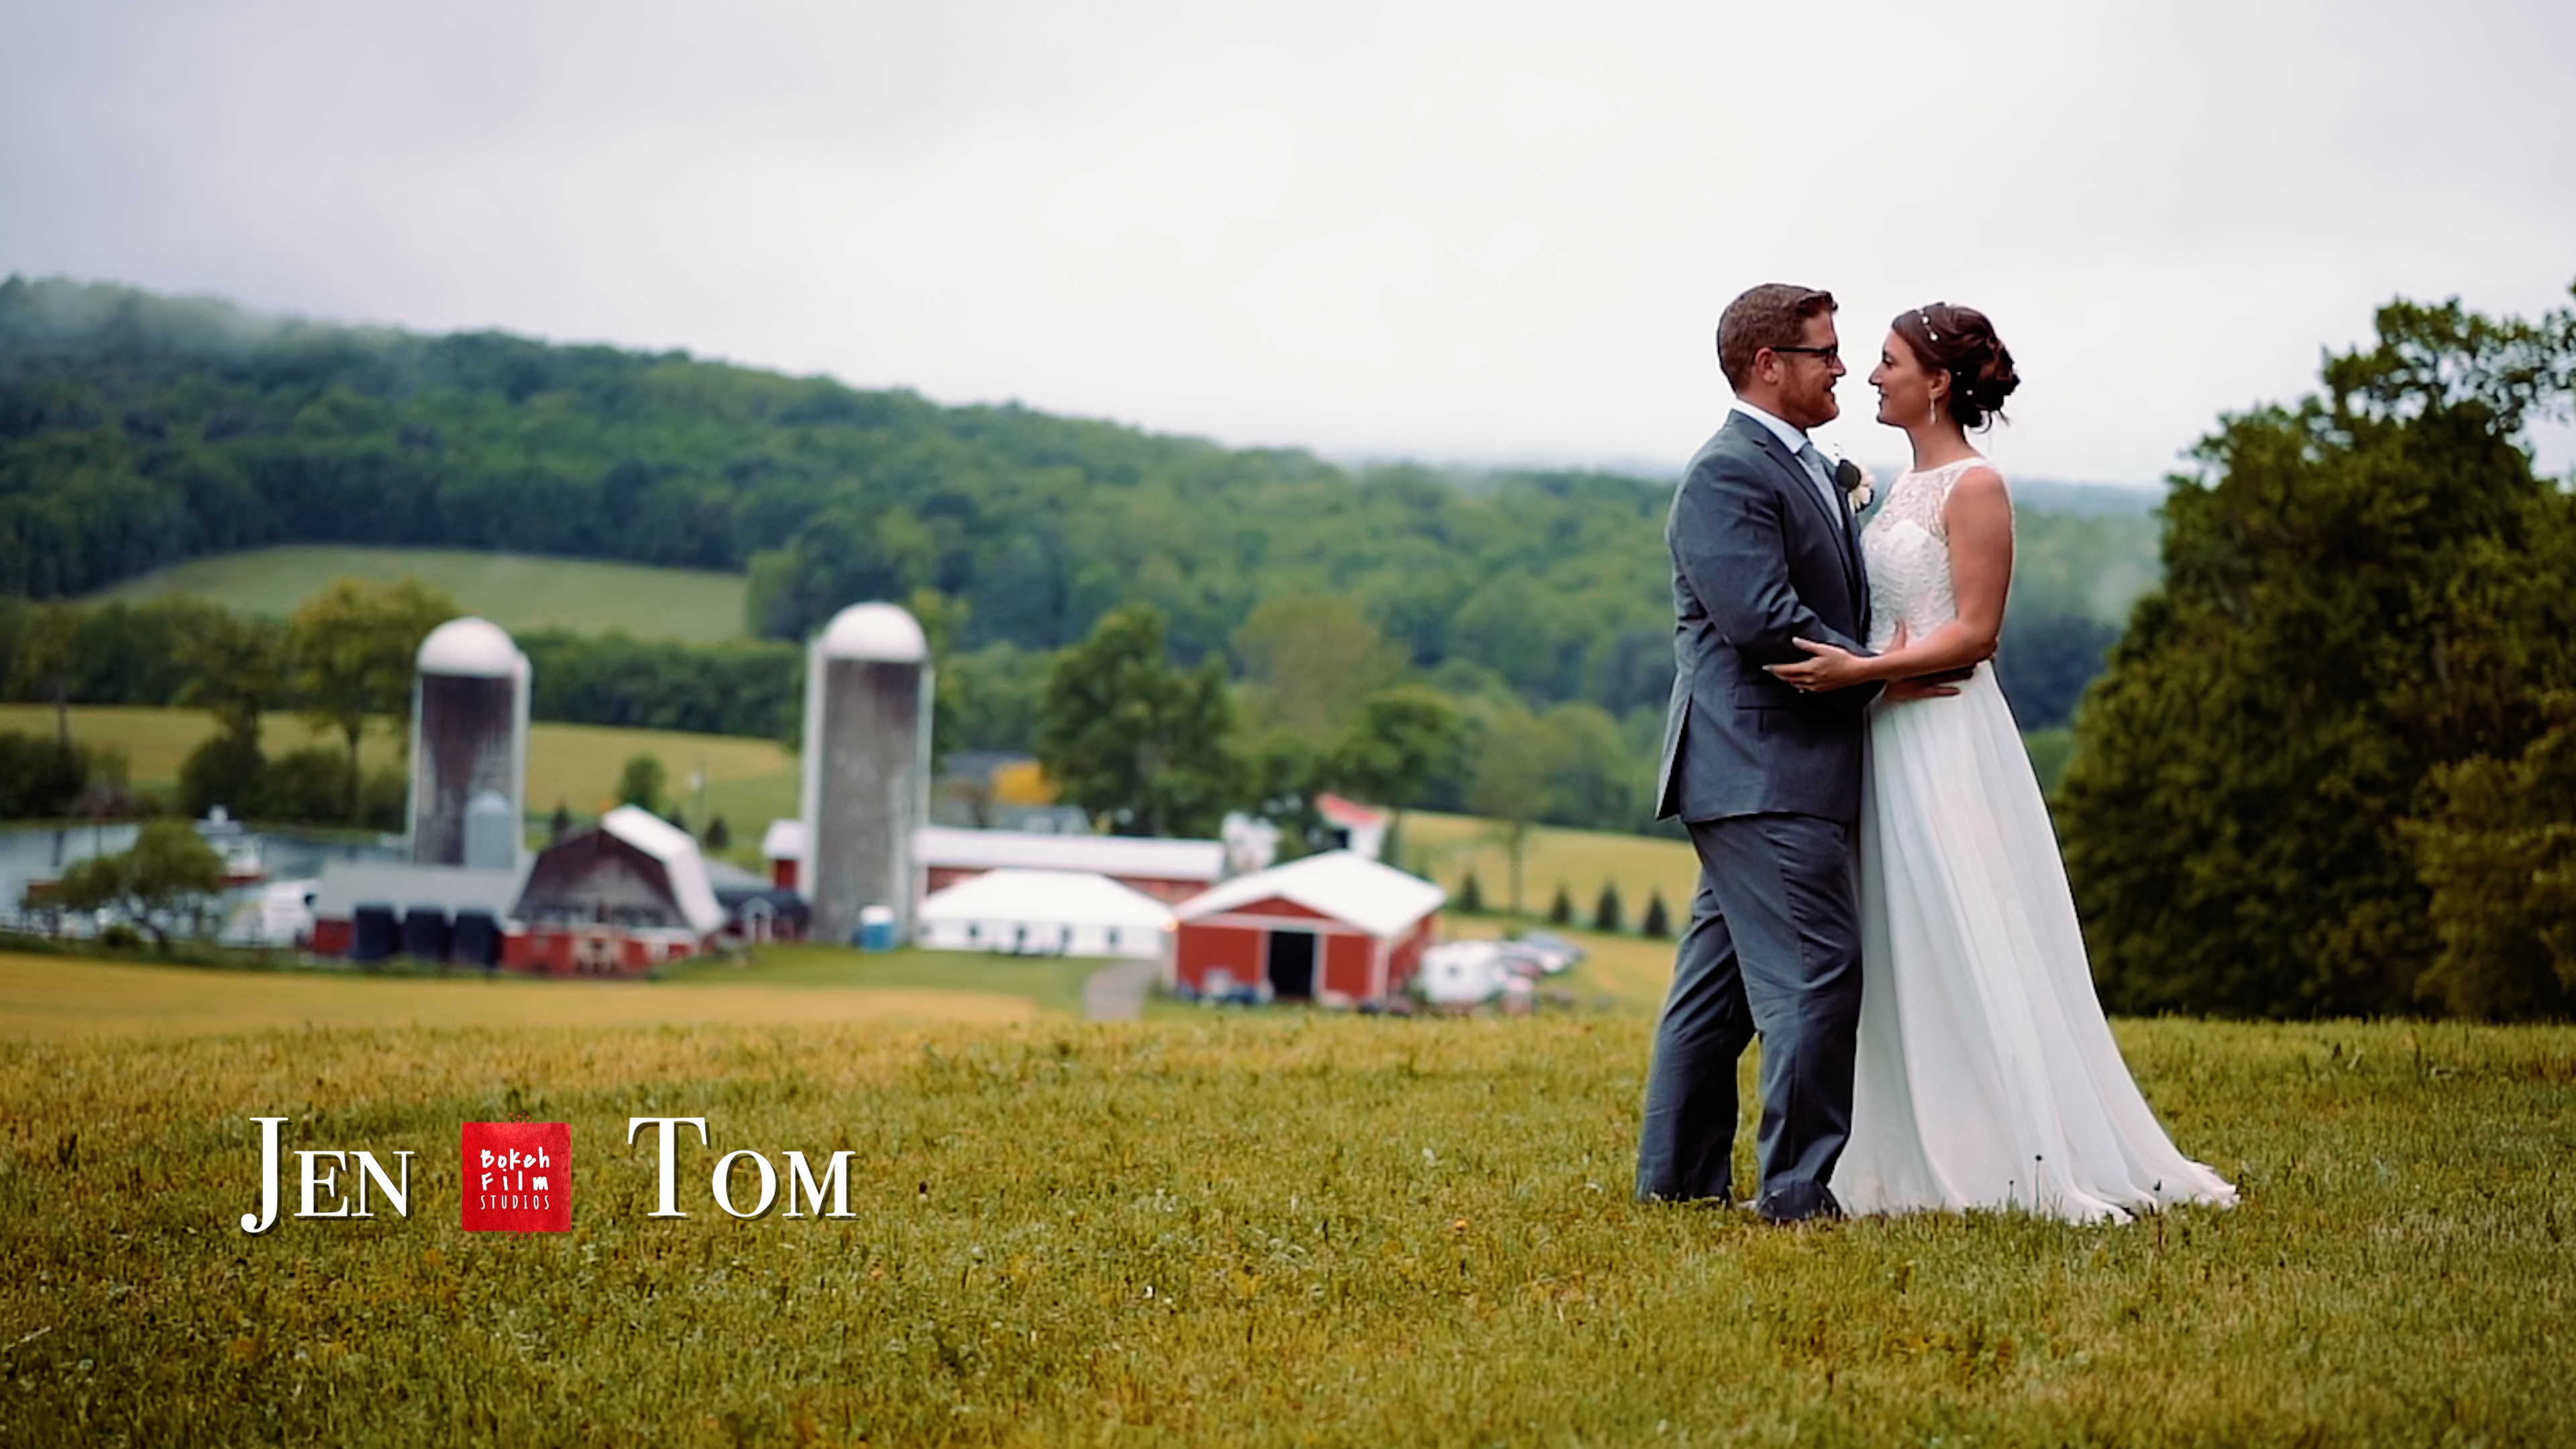 Thomas + Jen | South New Berlin, New York | Gilbertsville Farm house